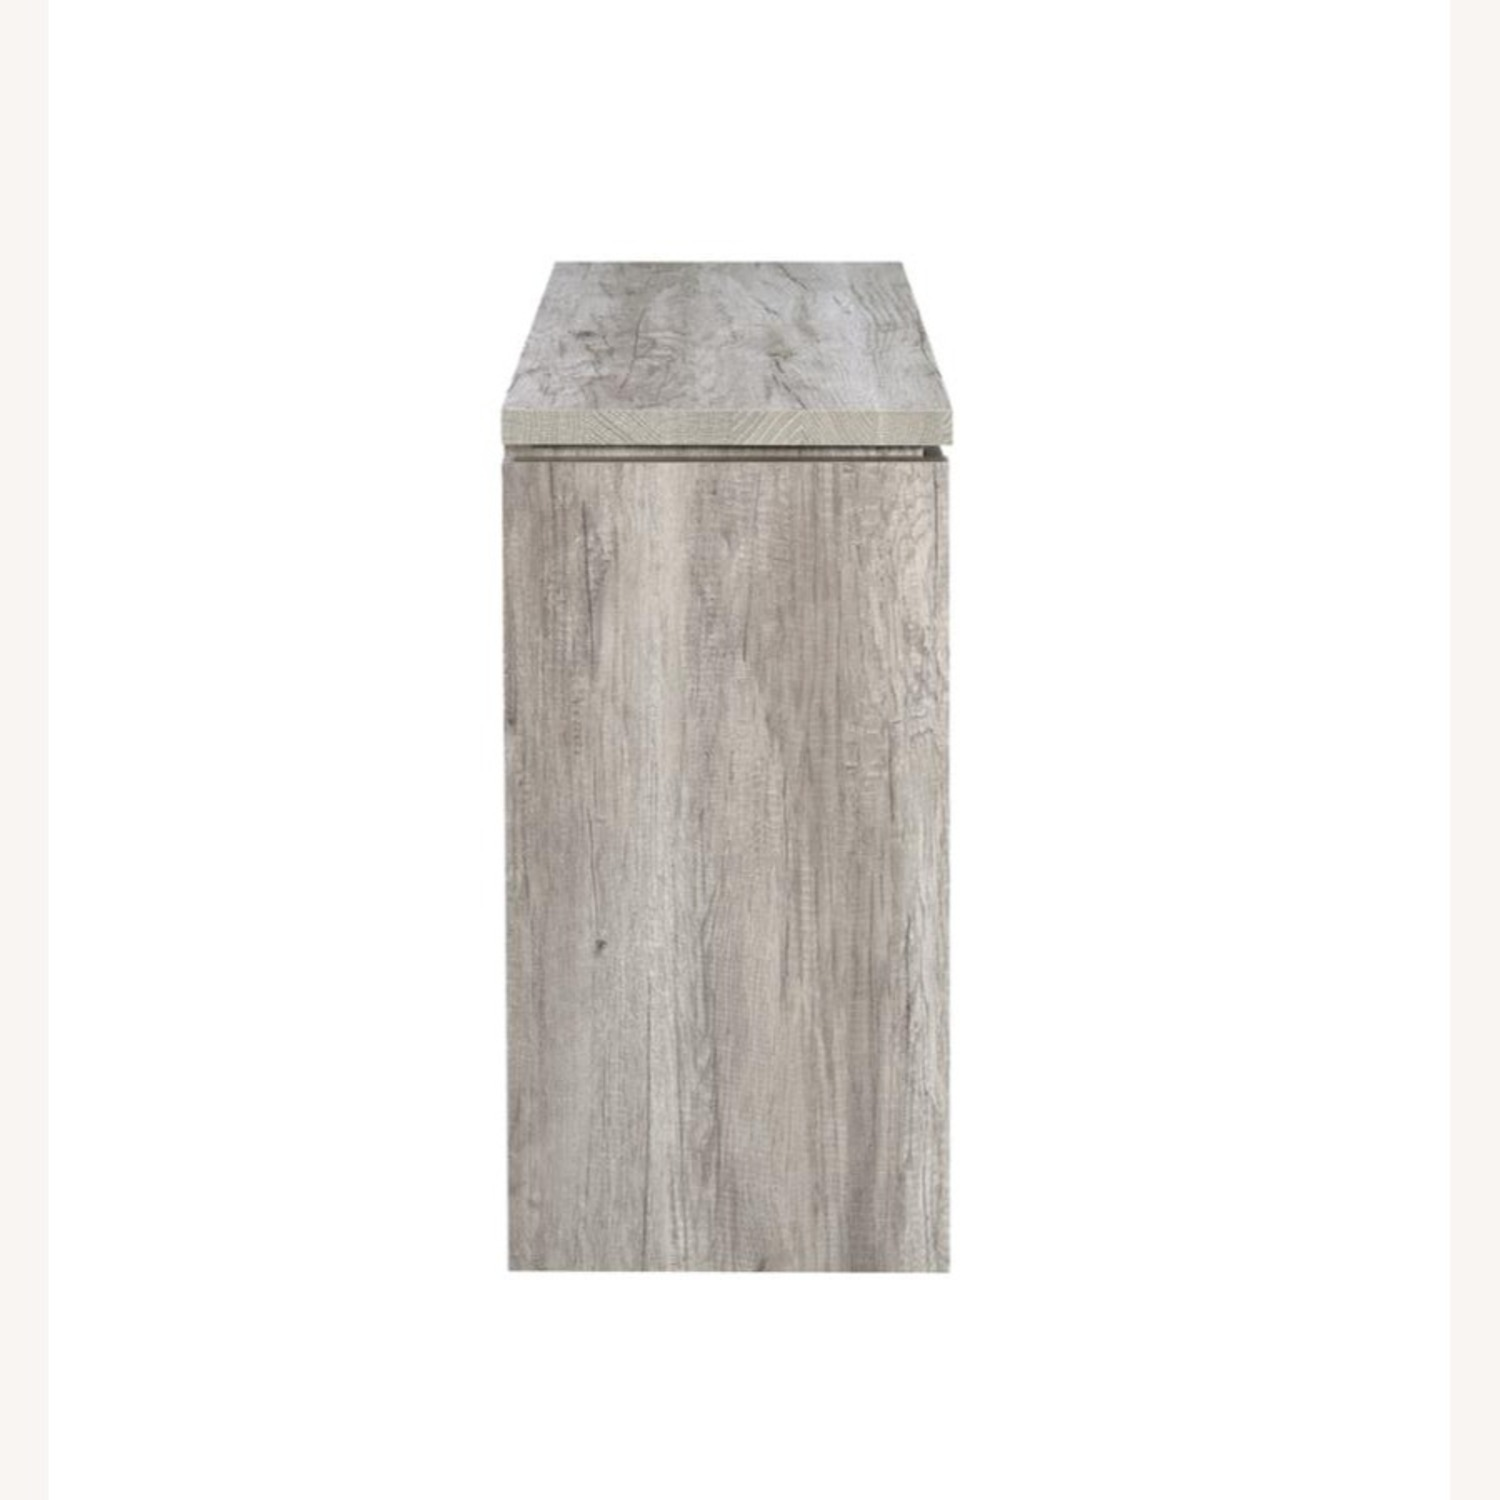 Accent Cabinet In Grey Driftwood W/ Rustic Metals - image-4